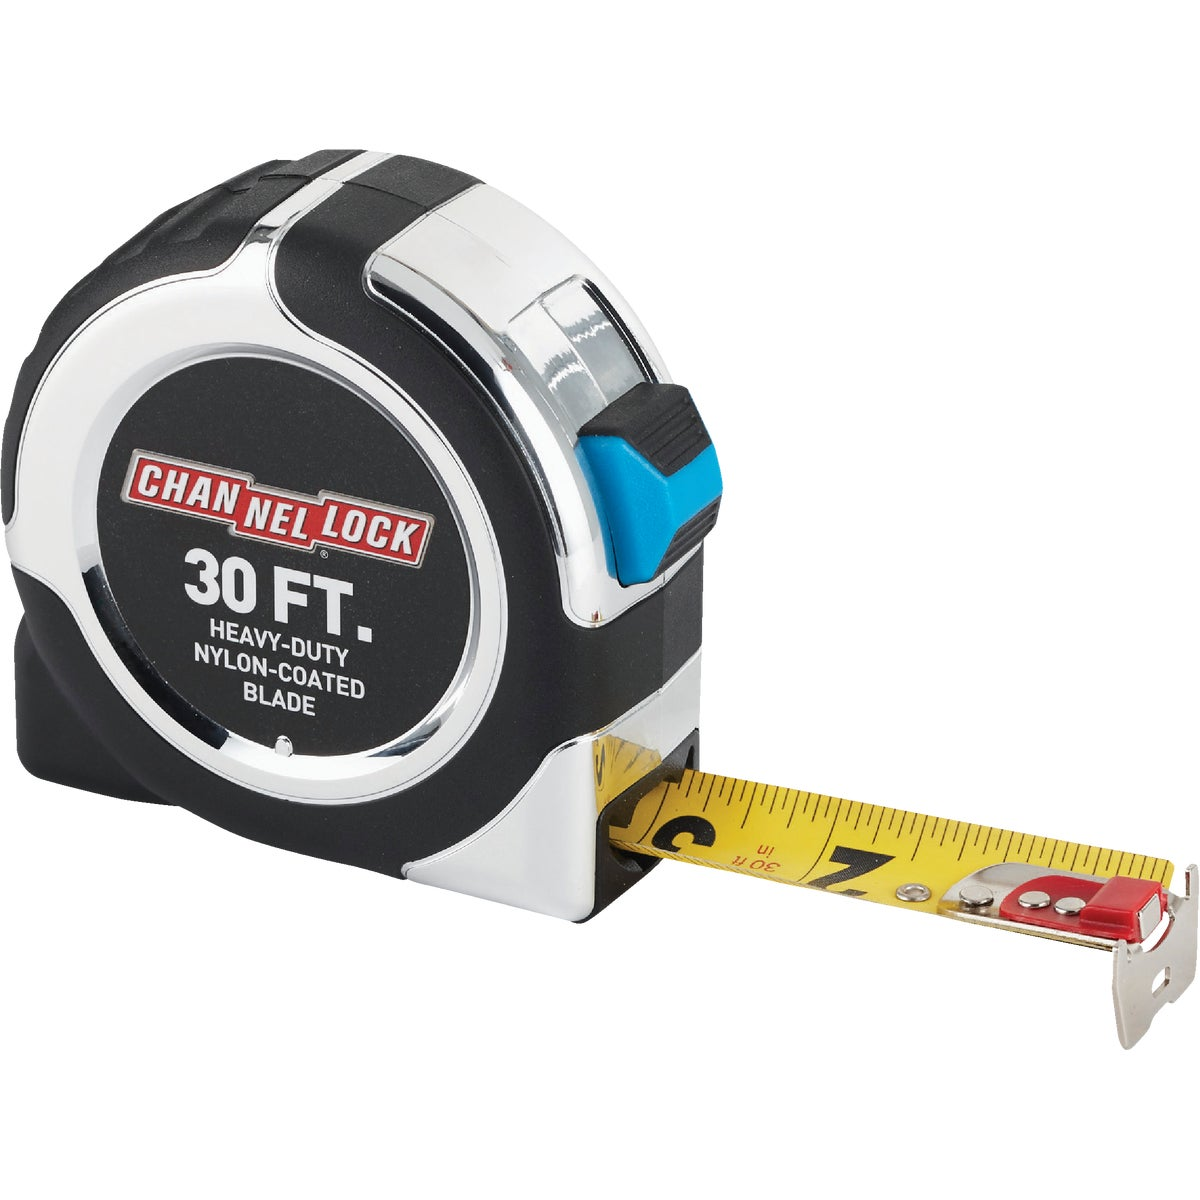 30' PRO TAPE MEASURE - CL71430 by Channellock Products